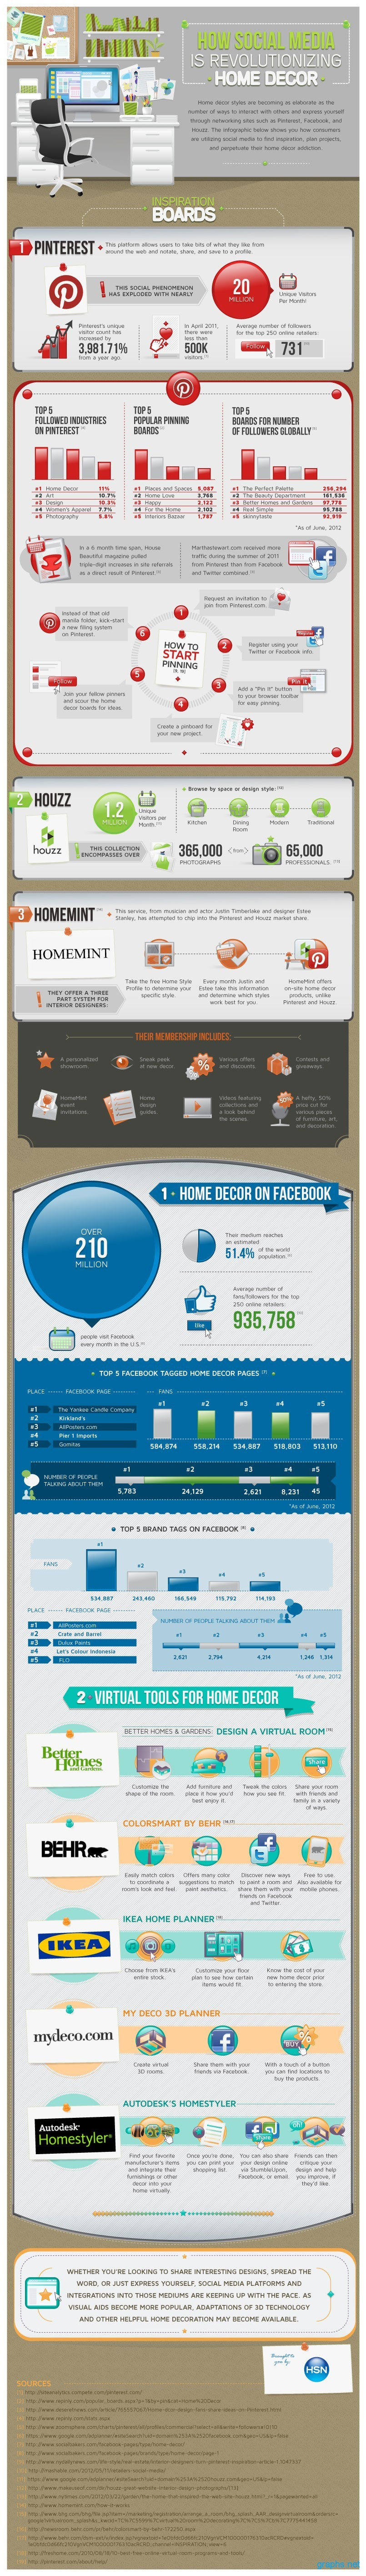 Home Decor Social Media